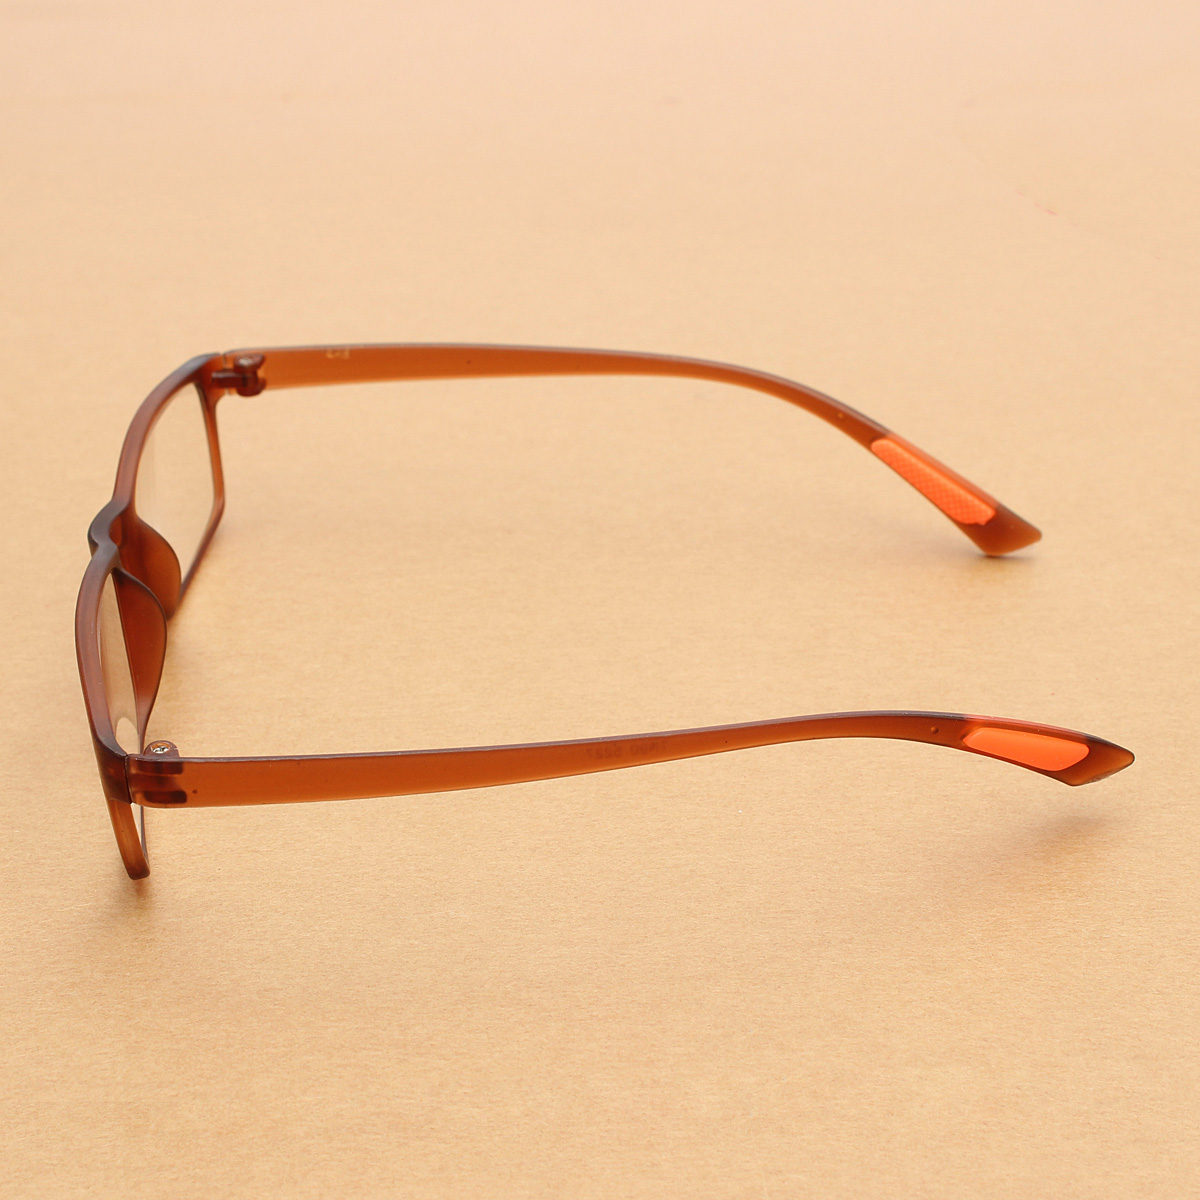 Super Lightweight Eyeglass Frames : Unisex Flexible Eyeglasses Tawny Frame Super Light Weight ...